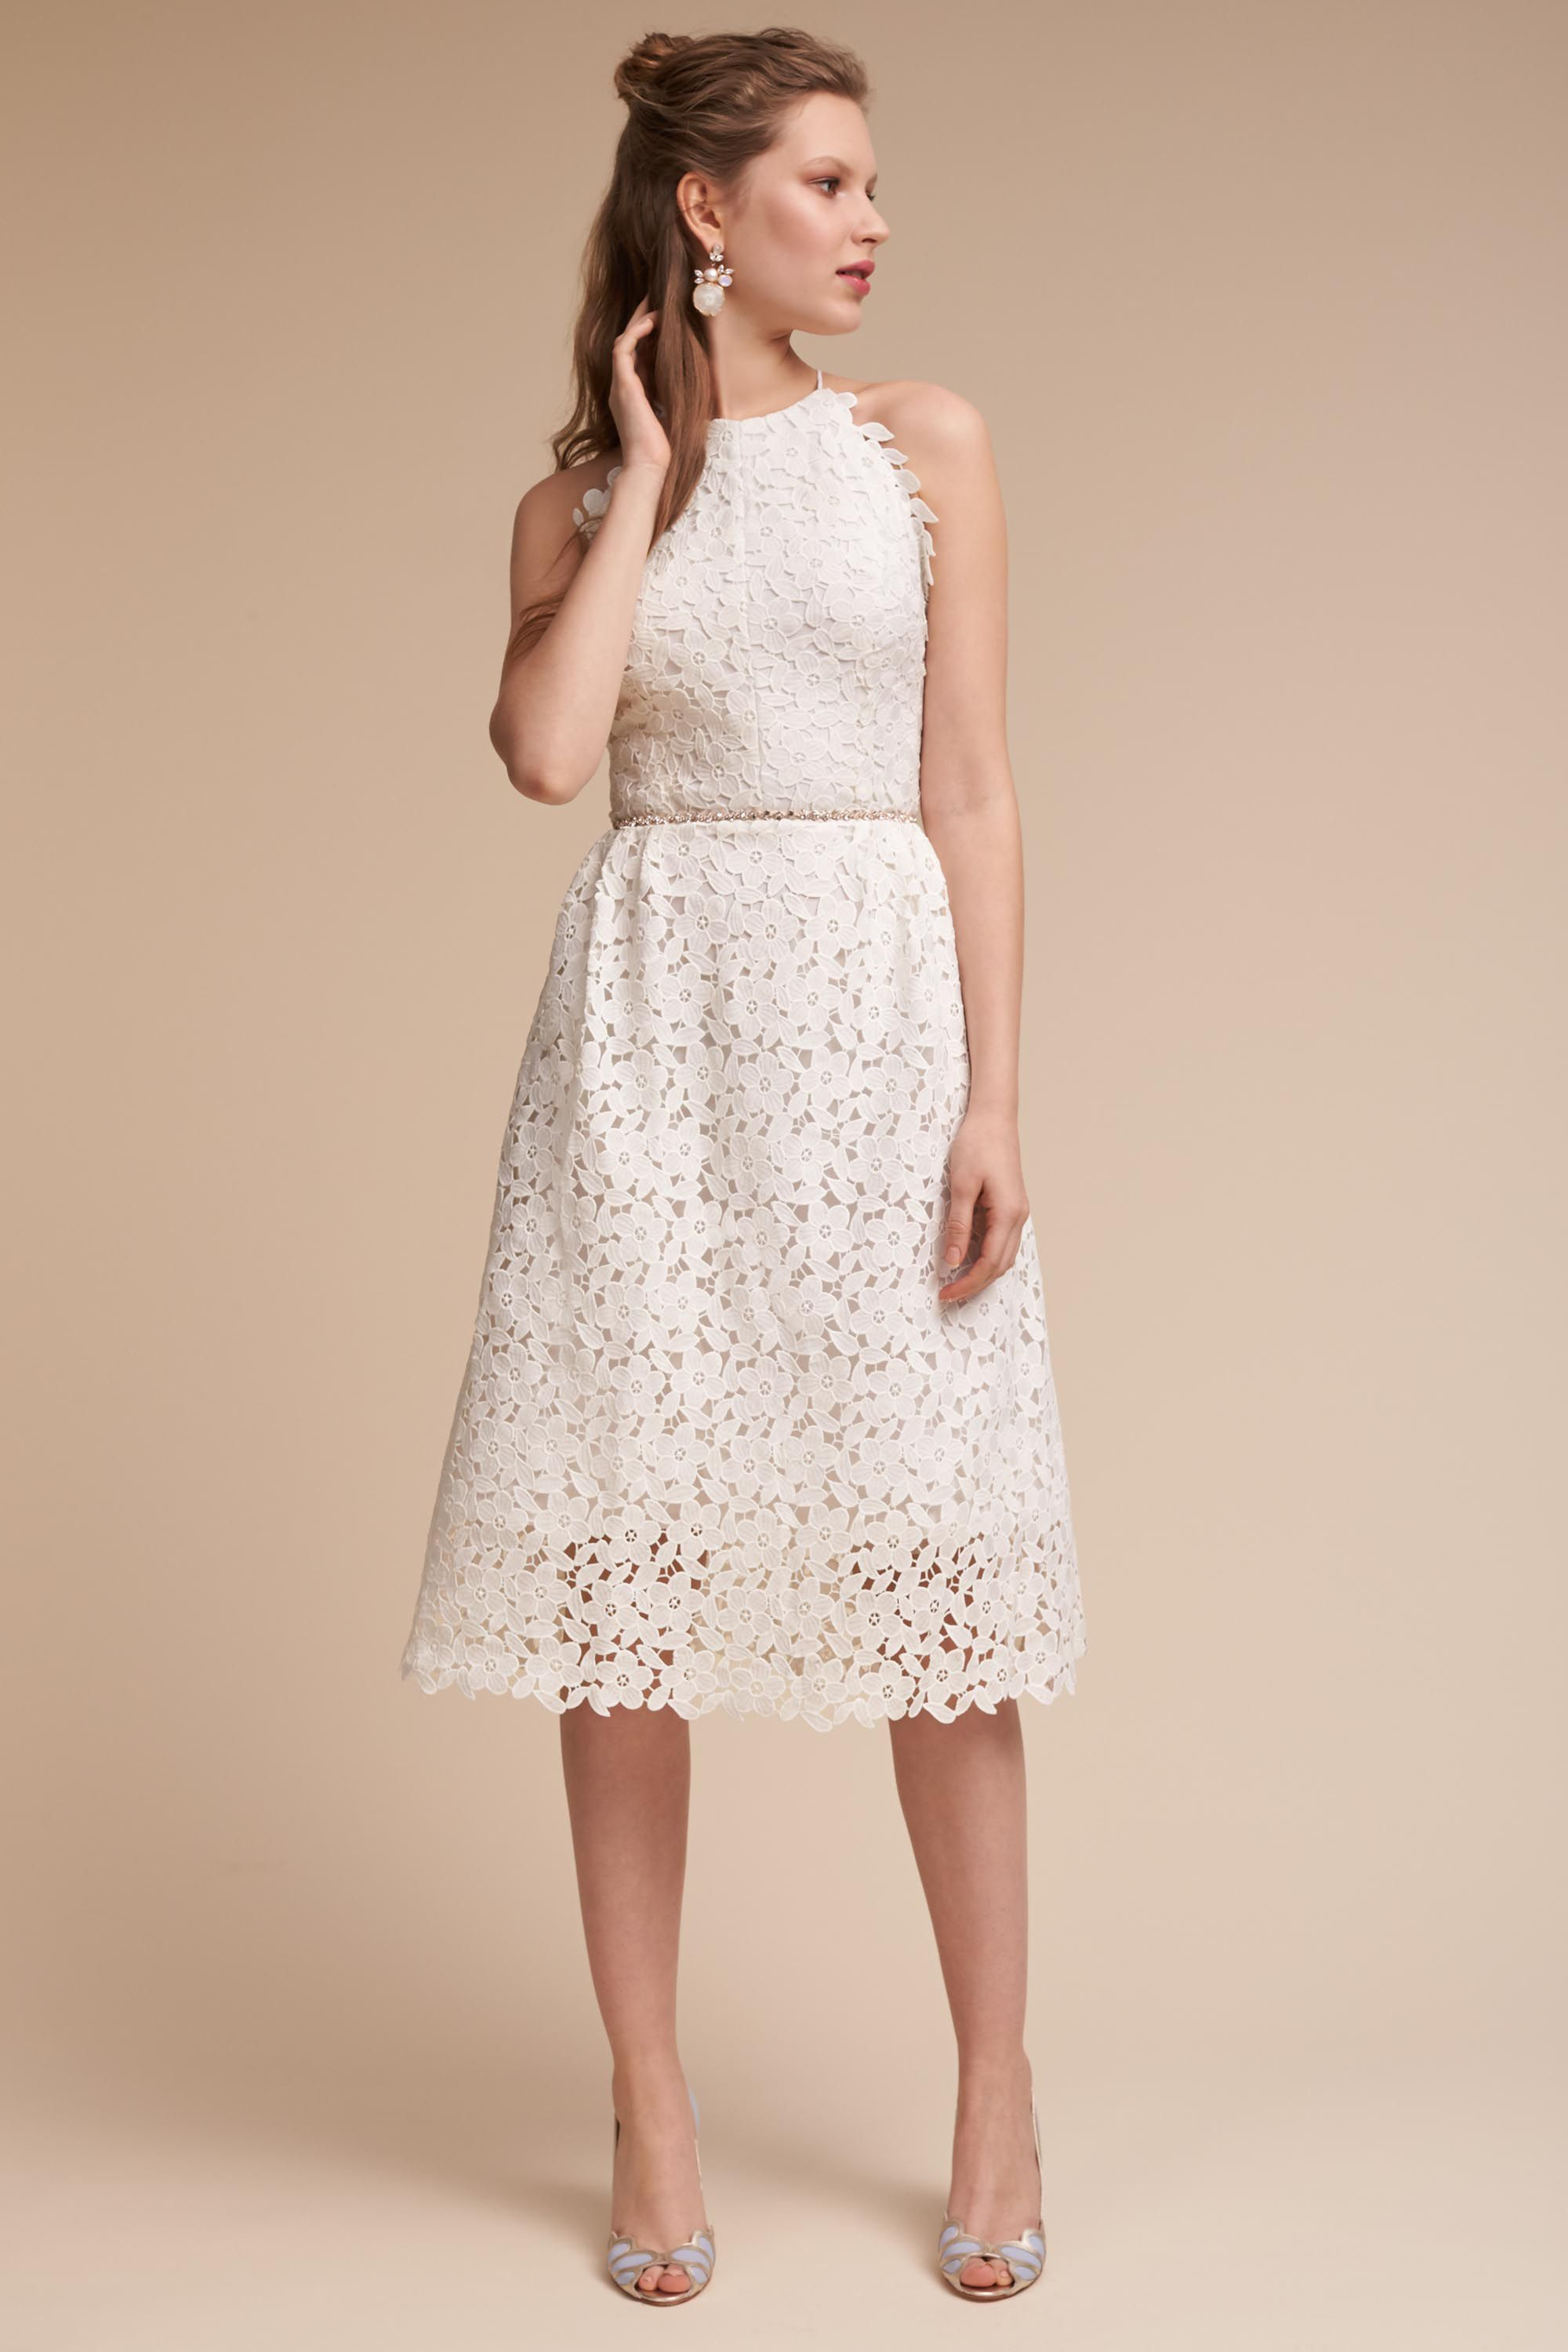 Romantic BHLDN Wedding Rehearsal Dresses - James Dress